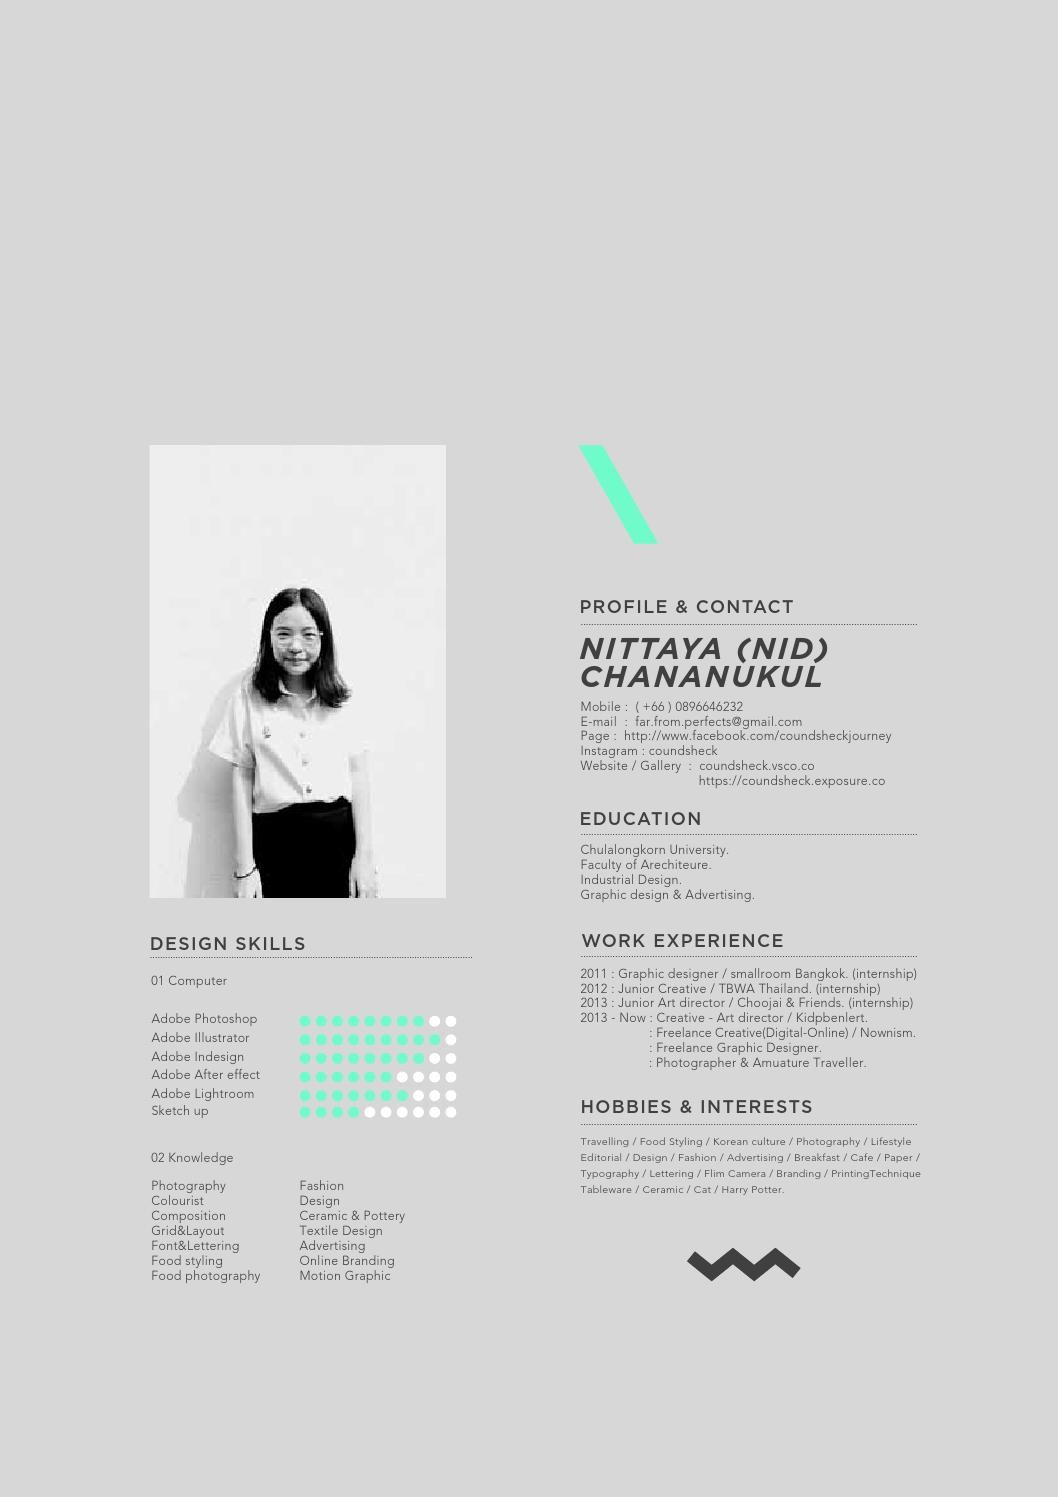 Portfolio For Vanilla Graphic Design Resume Resume Design Creative Portfolio Design